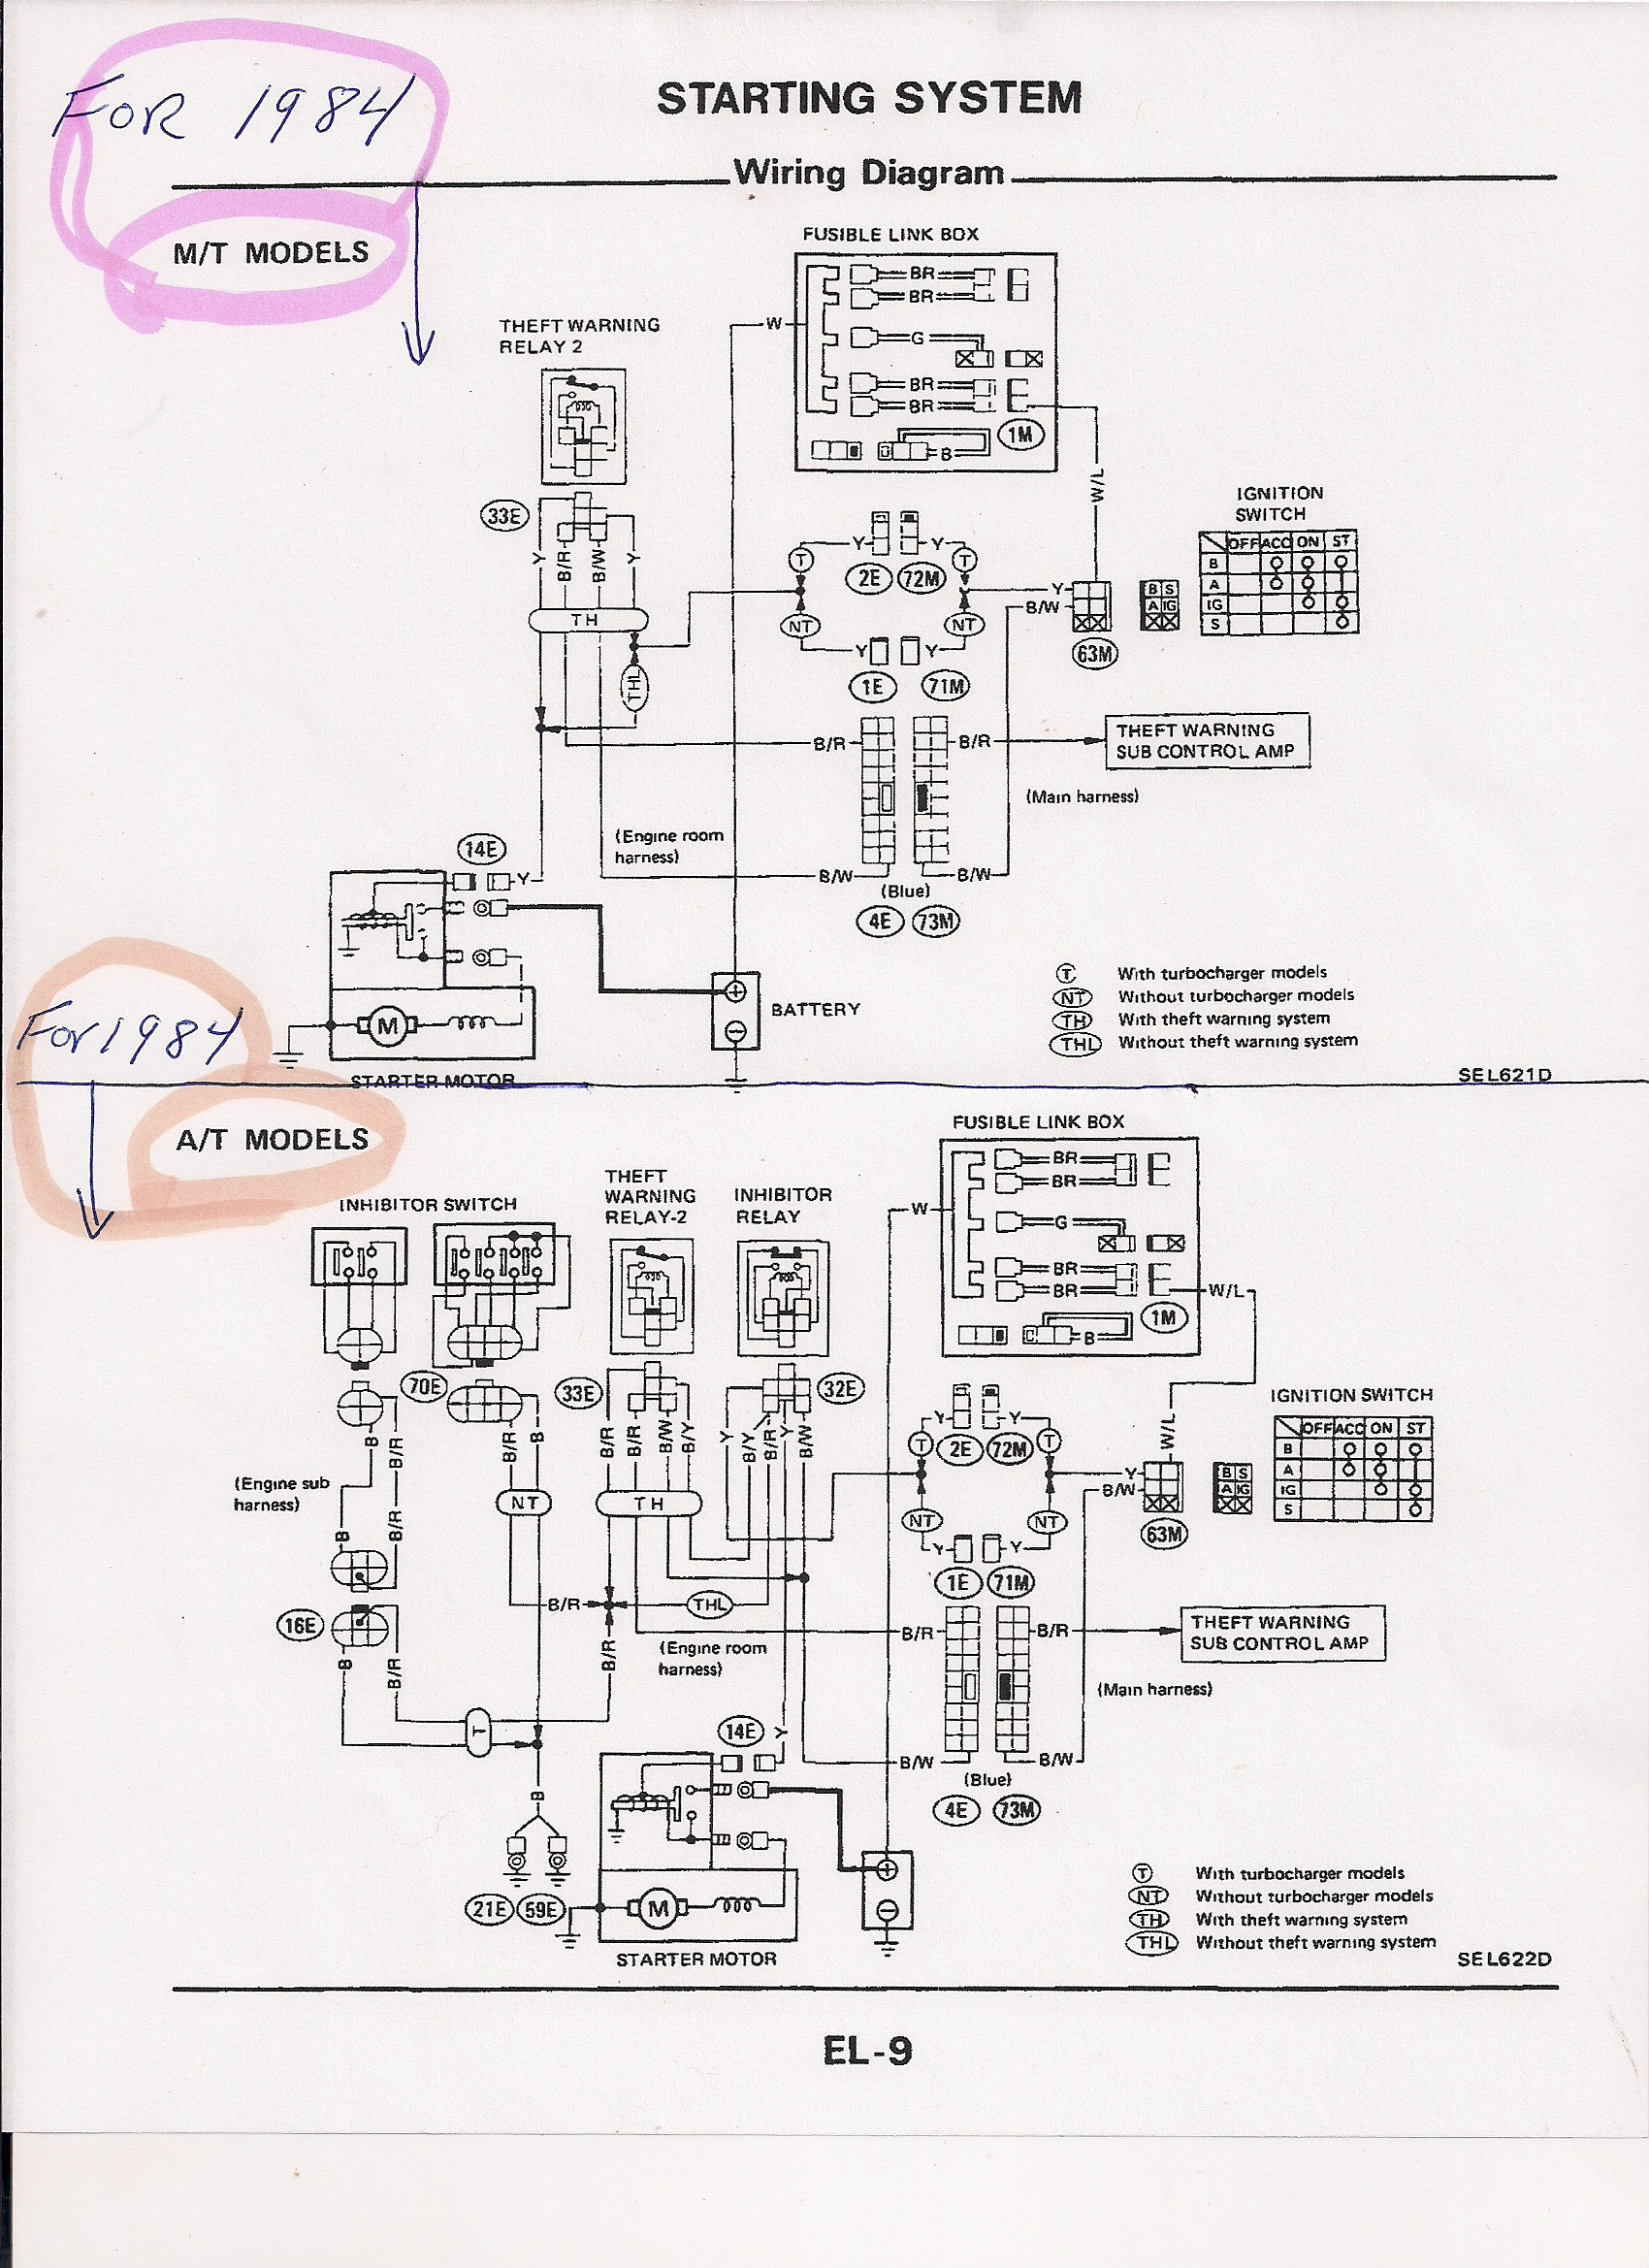 1985 Nissan 300zx Ignition Wiring Diagram. Nissan. Wiring